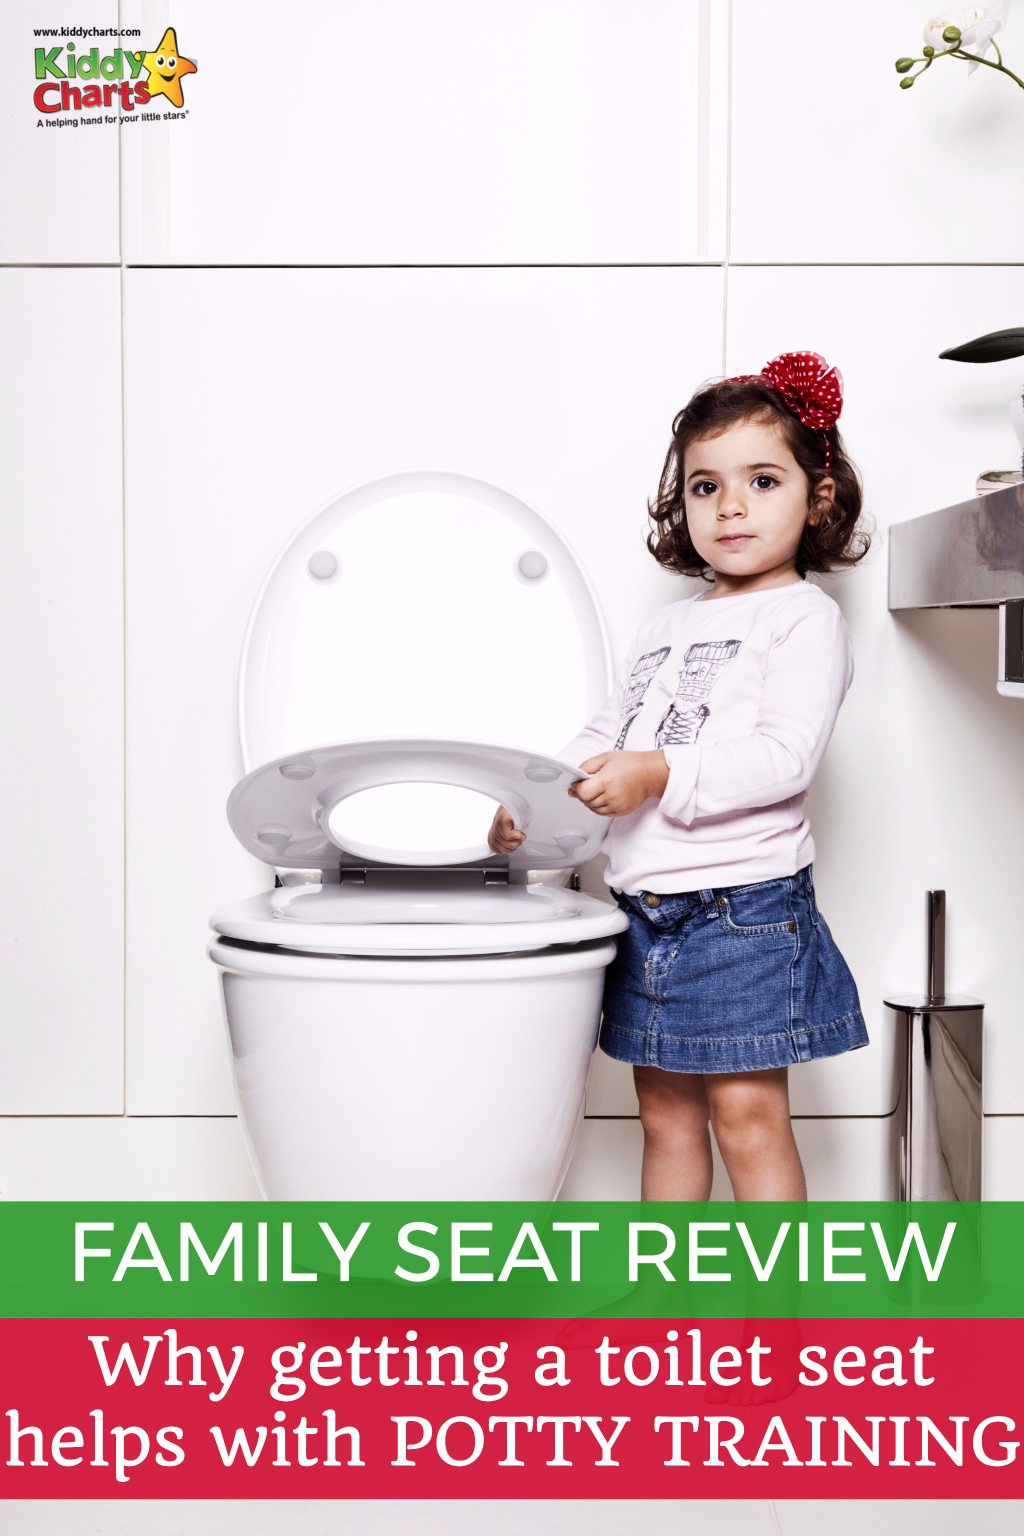 So gettting a toilet seat seems strange to help with potty training - right? WRONG. The Family Seat is great potty training help and we tell you why!